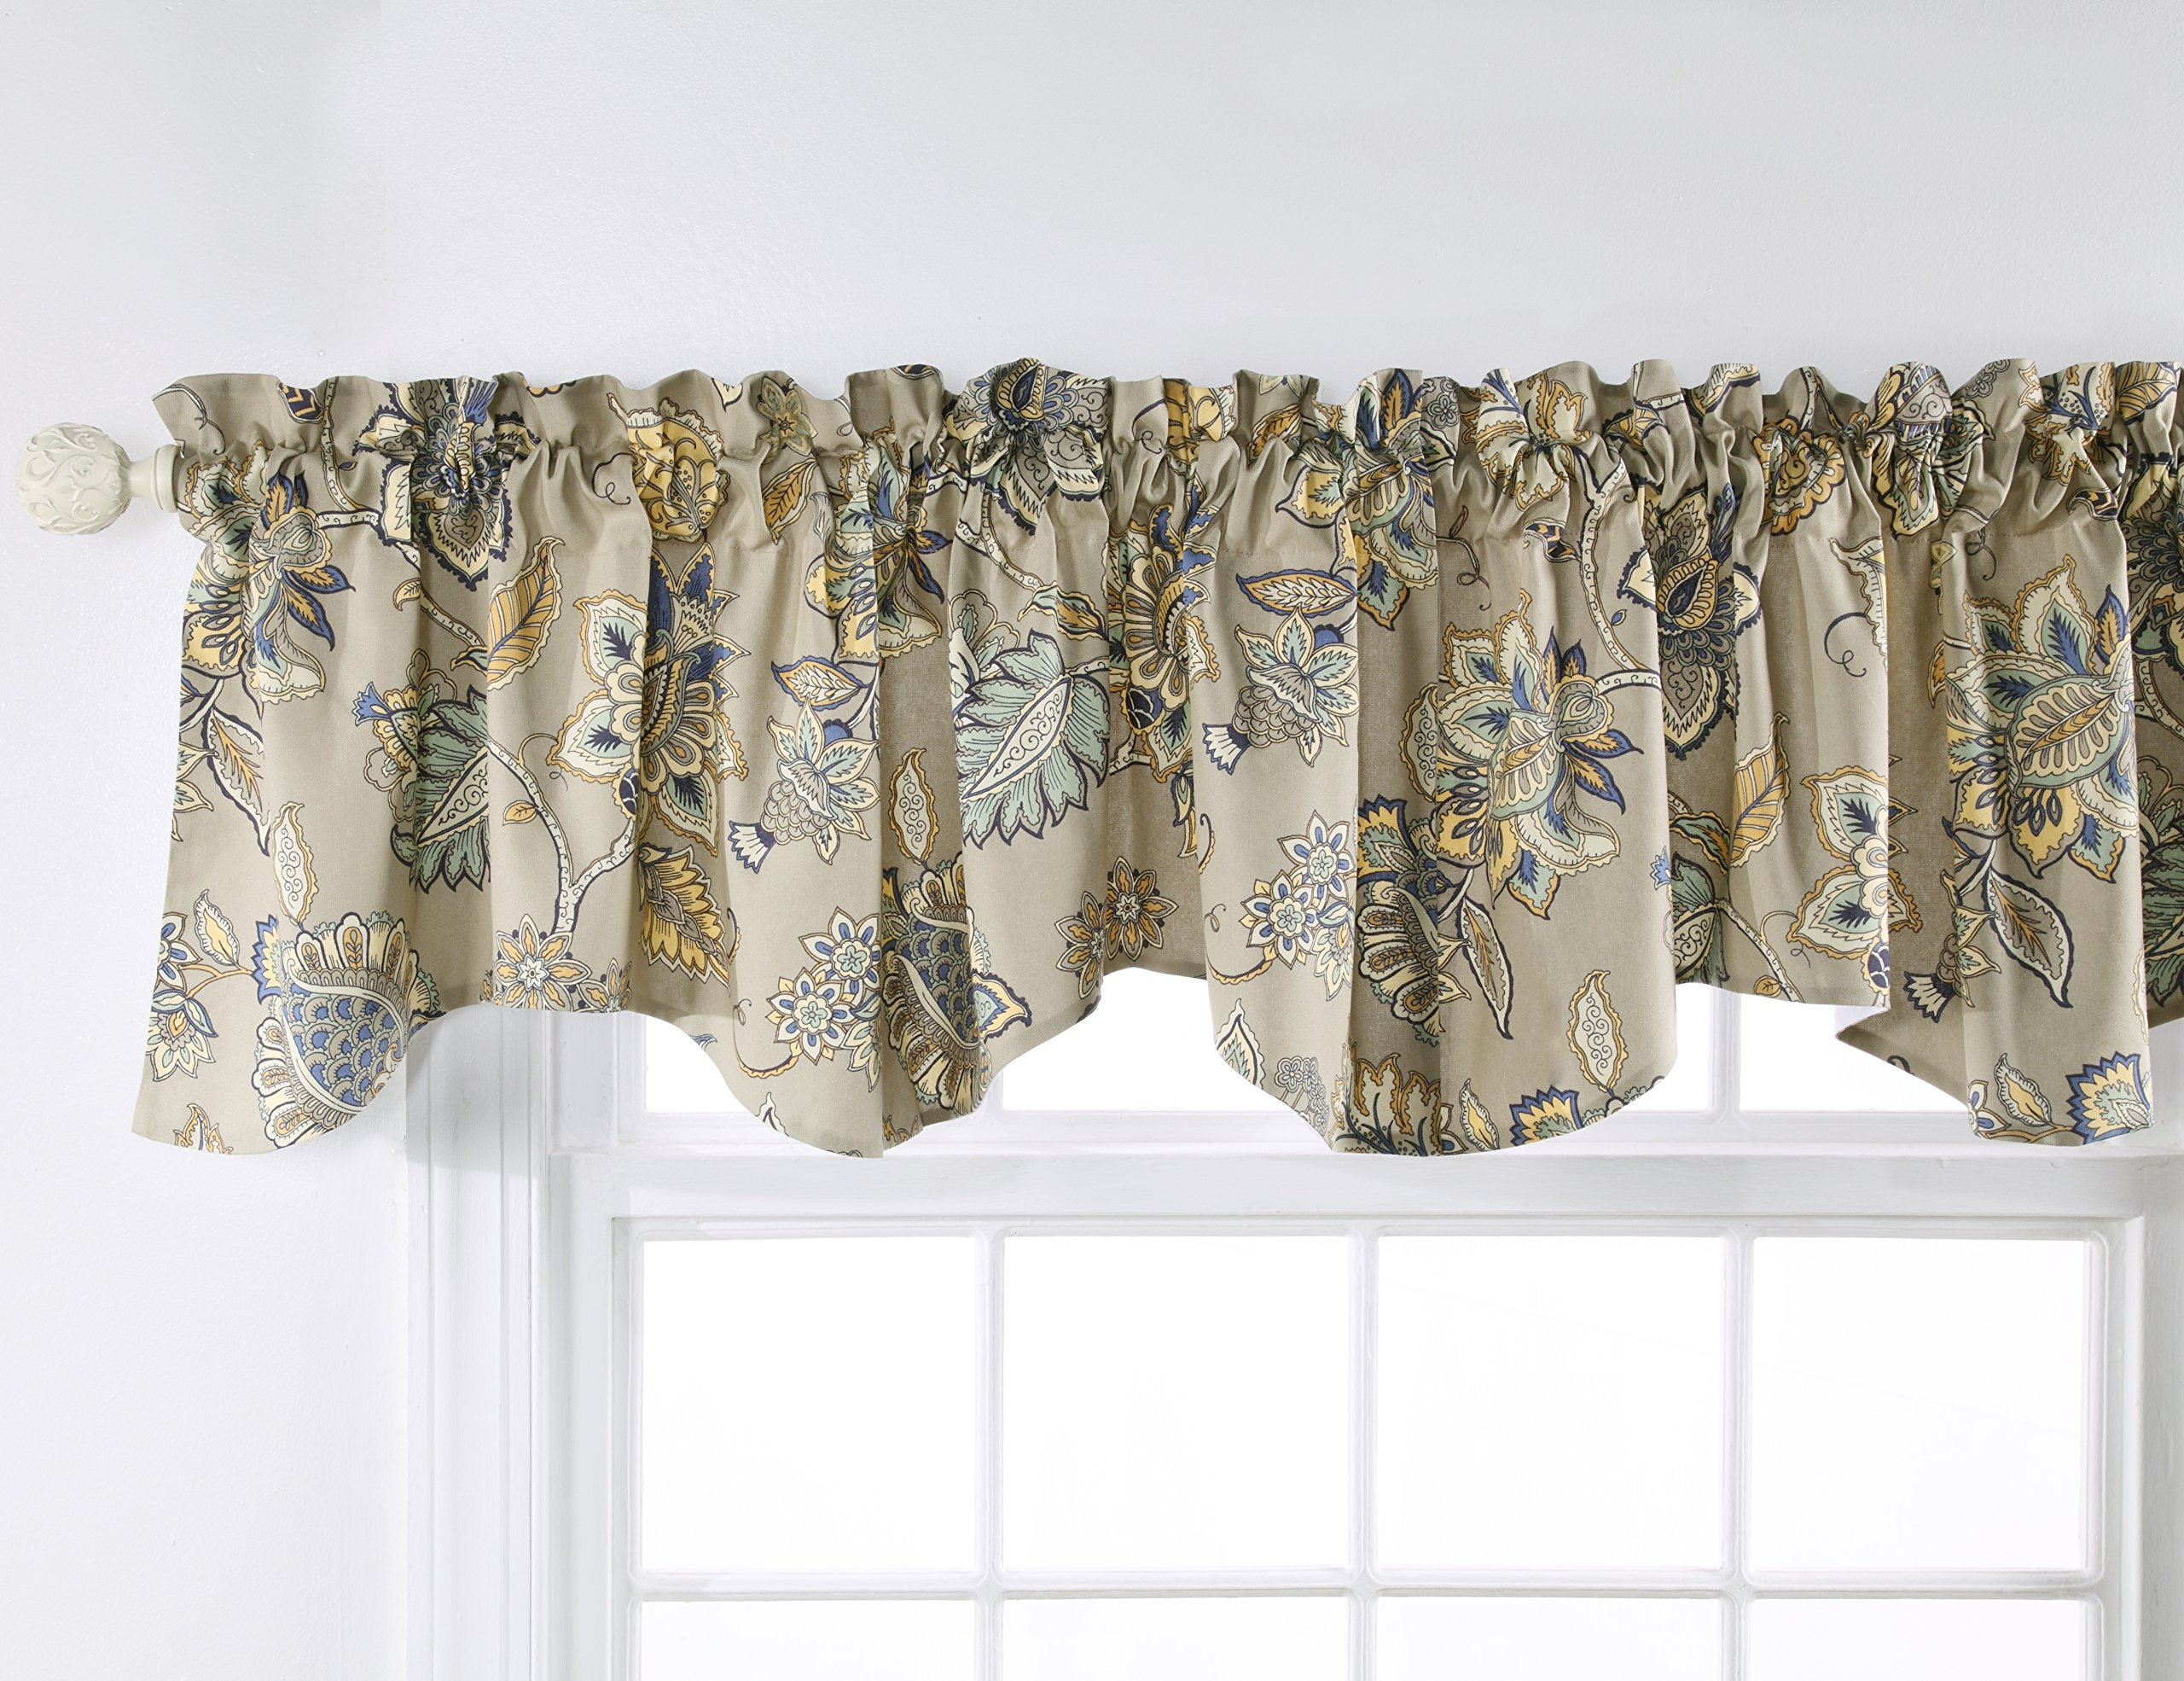 Stylemaster Home Products Twill and Birch Celine Lined Printed Scalloped Valance, 56 by 17-Inch, Stone